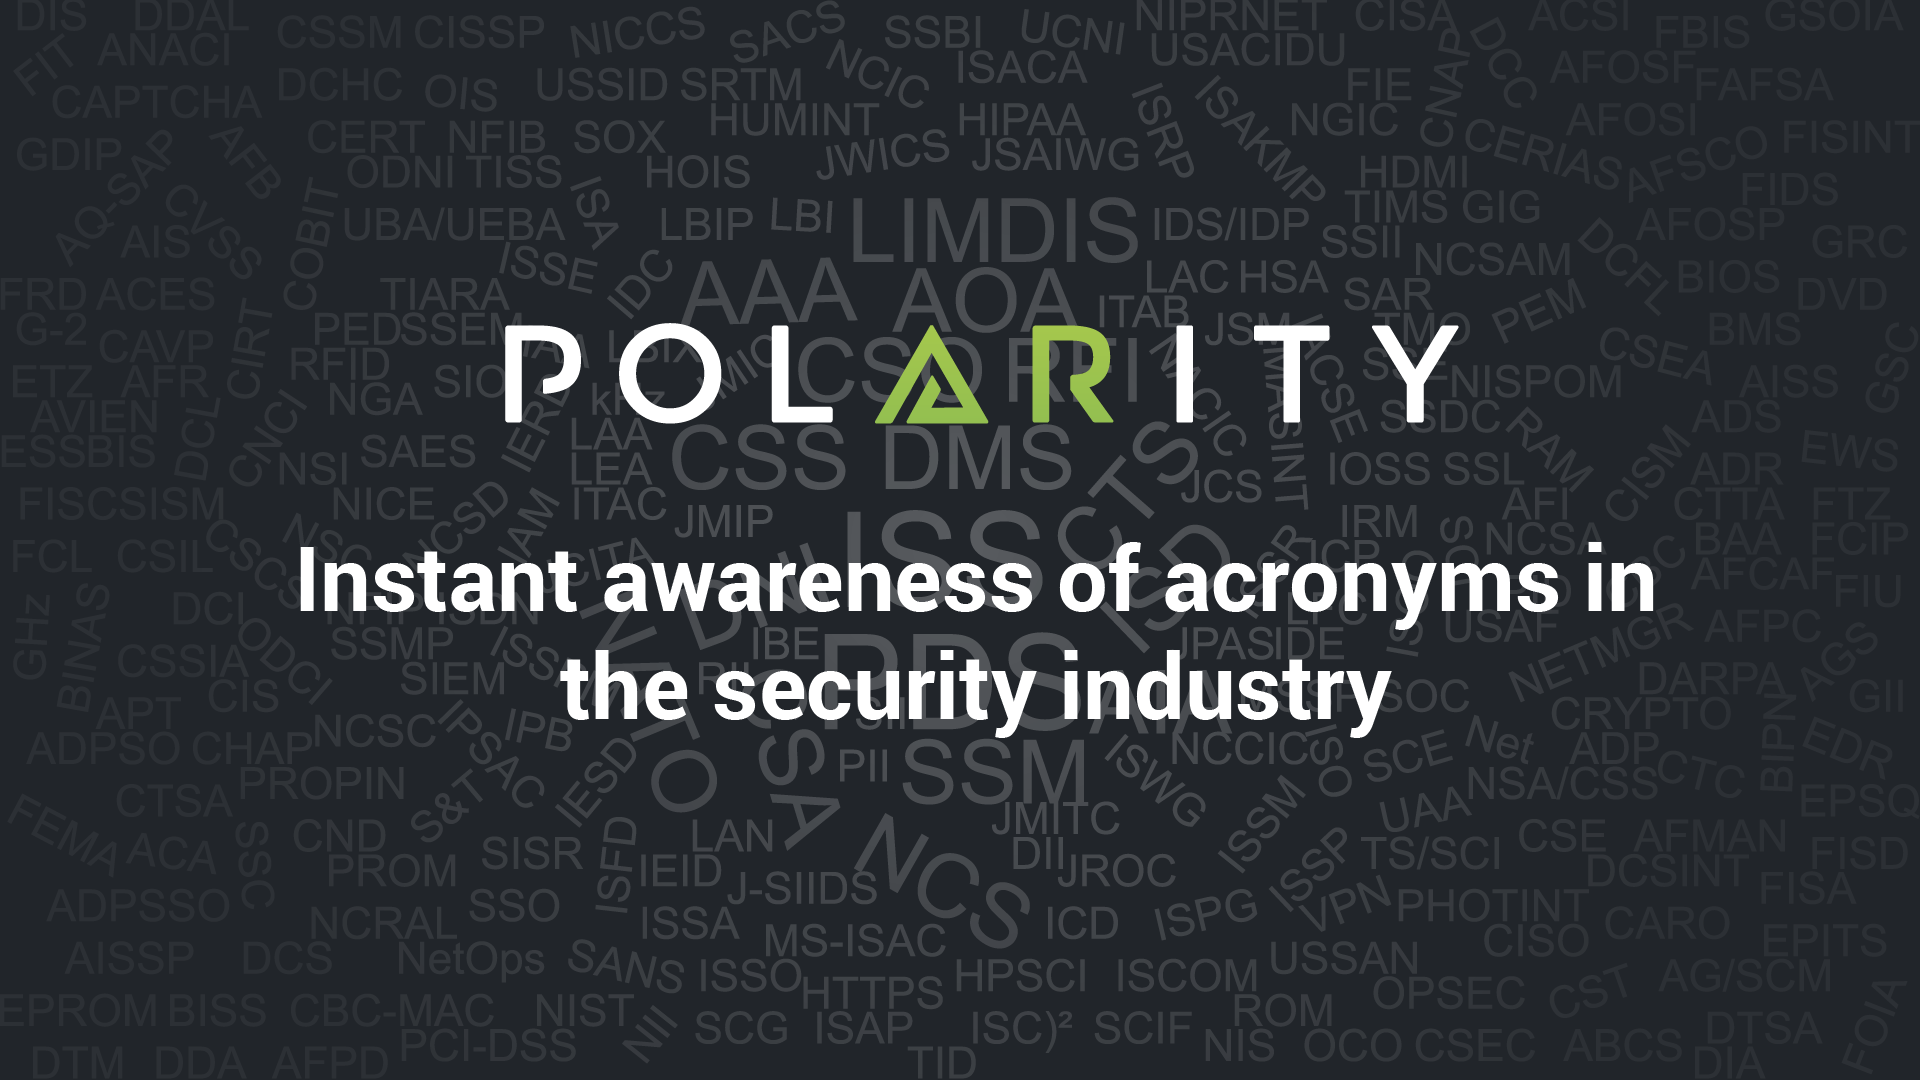 The Definitive Guide to Security Industry Acronyms cover image